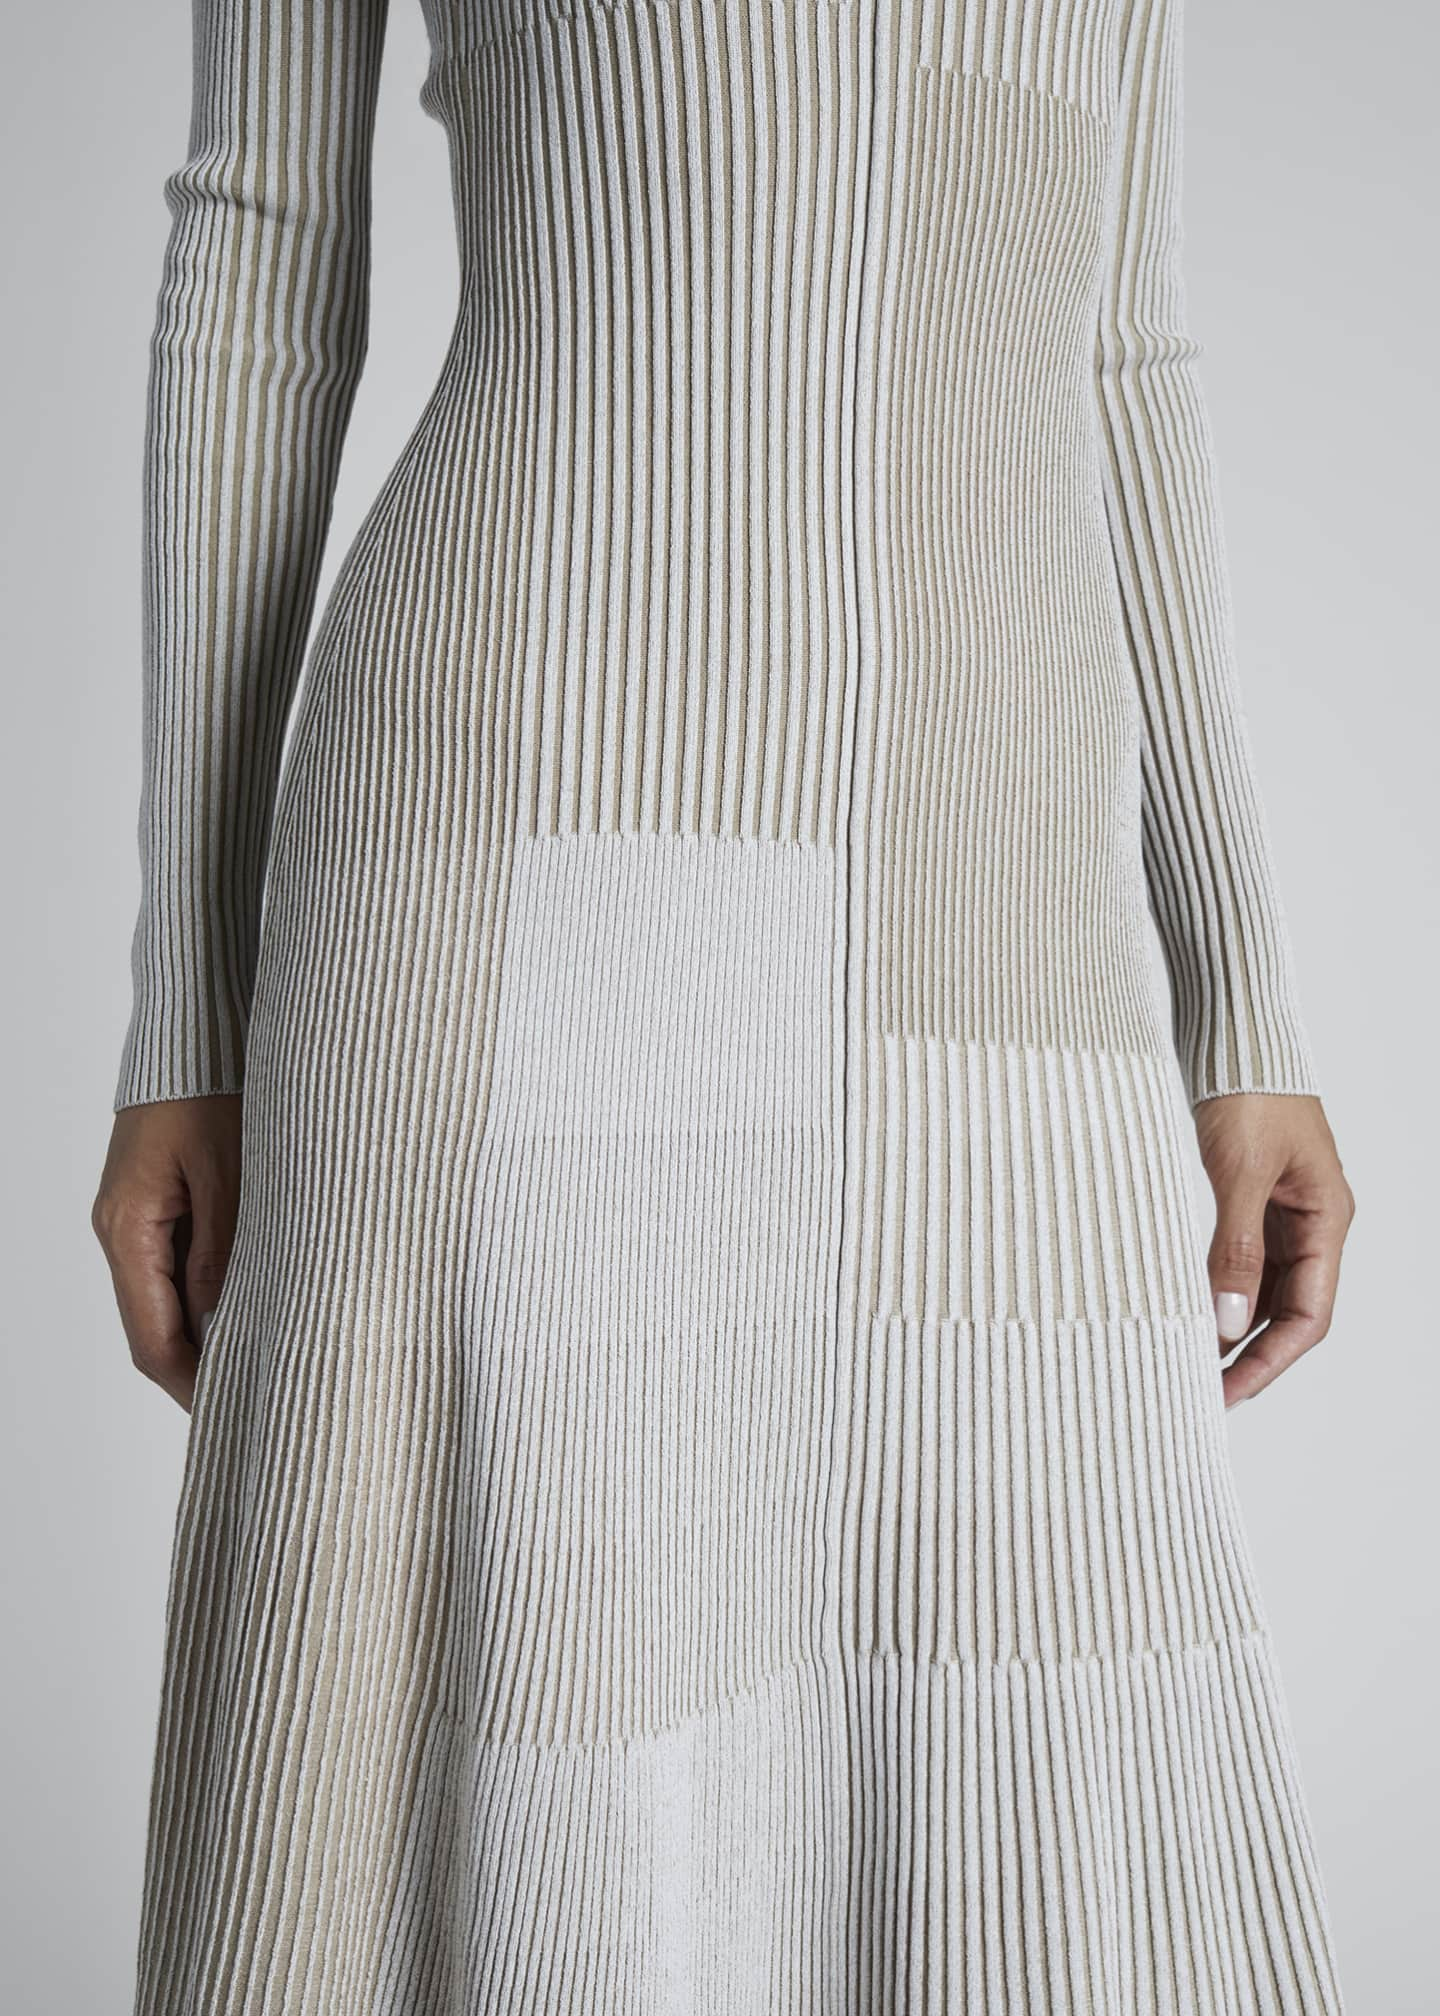 Image 3 of 3: Scoop-Neck Patchwork Sweaterdress